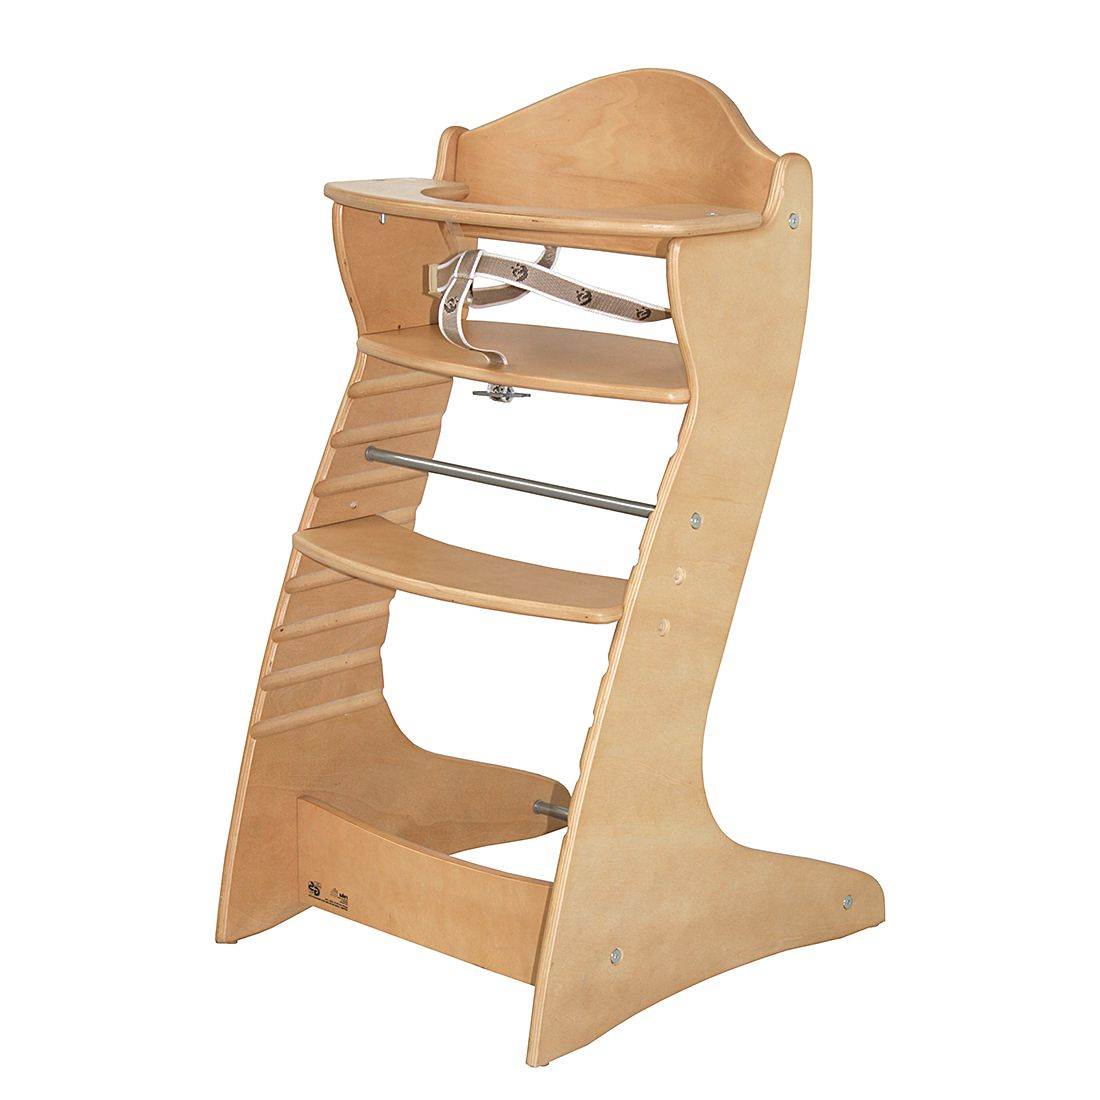 Home 24 - Chaise haute en escalier chair up - bois naturel, roba